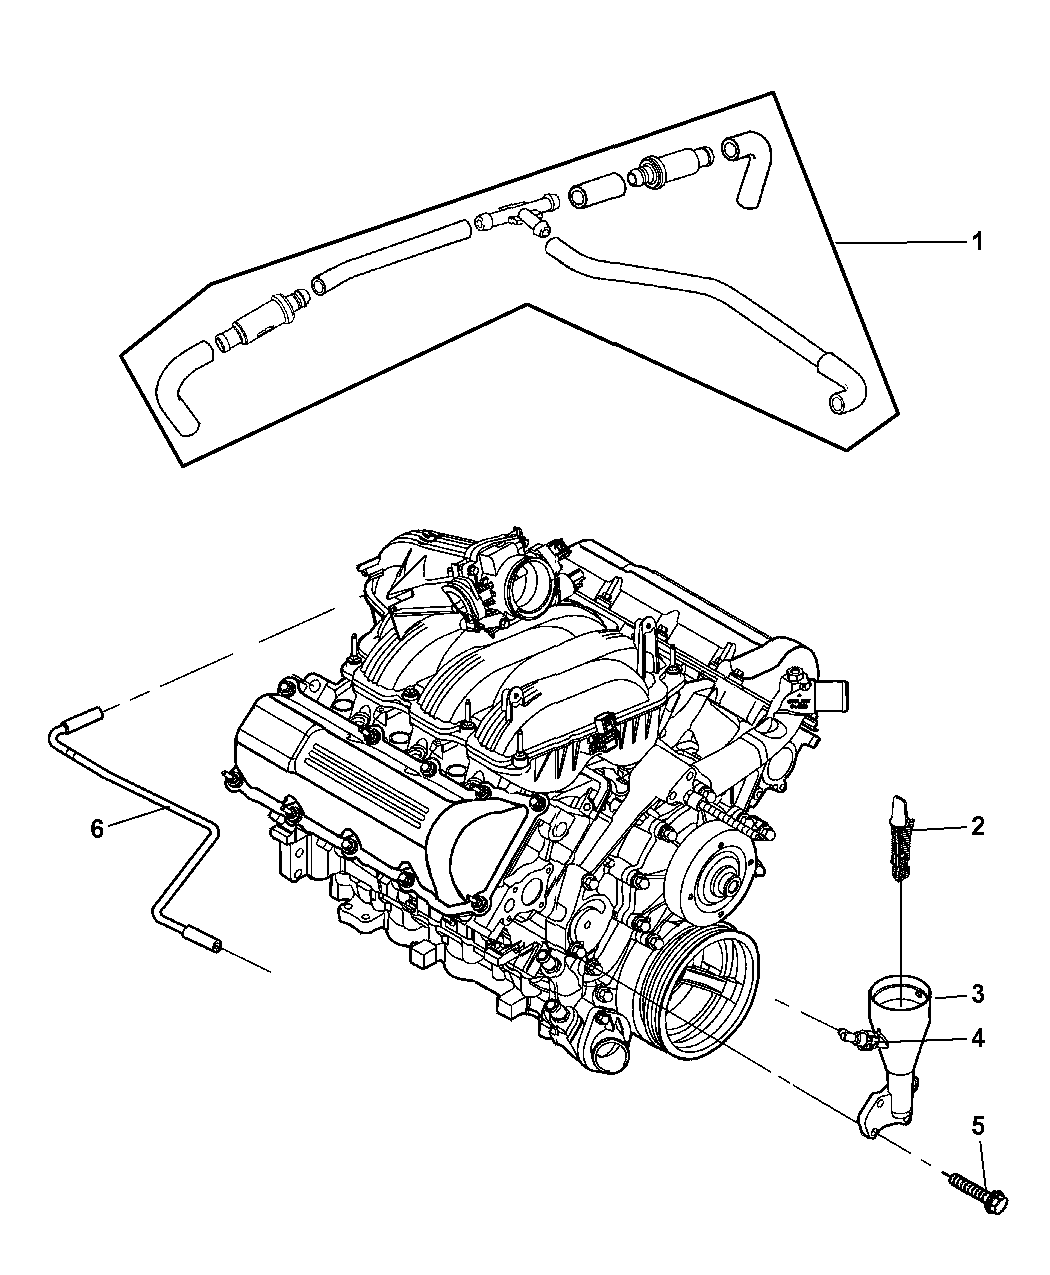 2005 Jeep Grand Cherokee Engine Diagram - 1995 Chevy Impala Ss Engine  Diagram | Bege Wiring Diagram | 2005 Jeep Grand Cherokee Engine Diagram |  | Bege Place Wiring Diagram - Bege Wiring Diagram